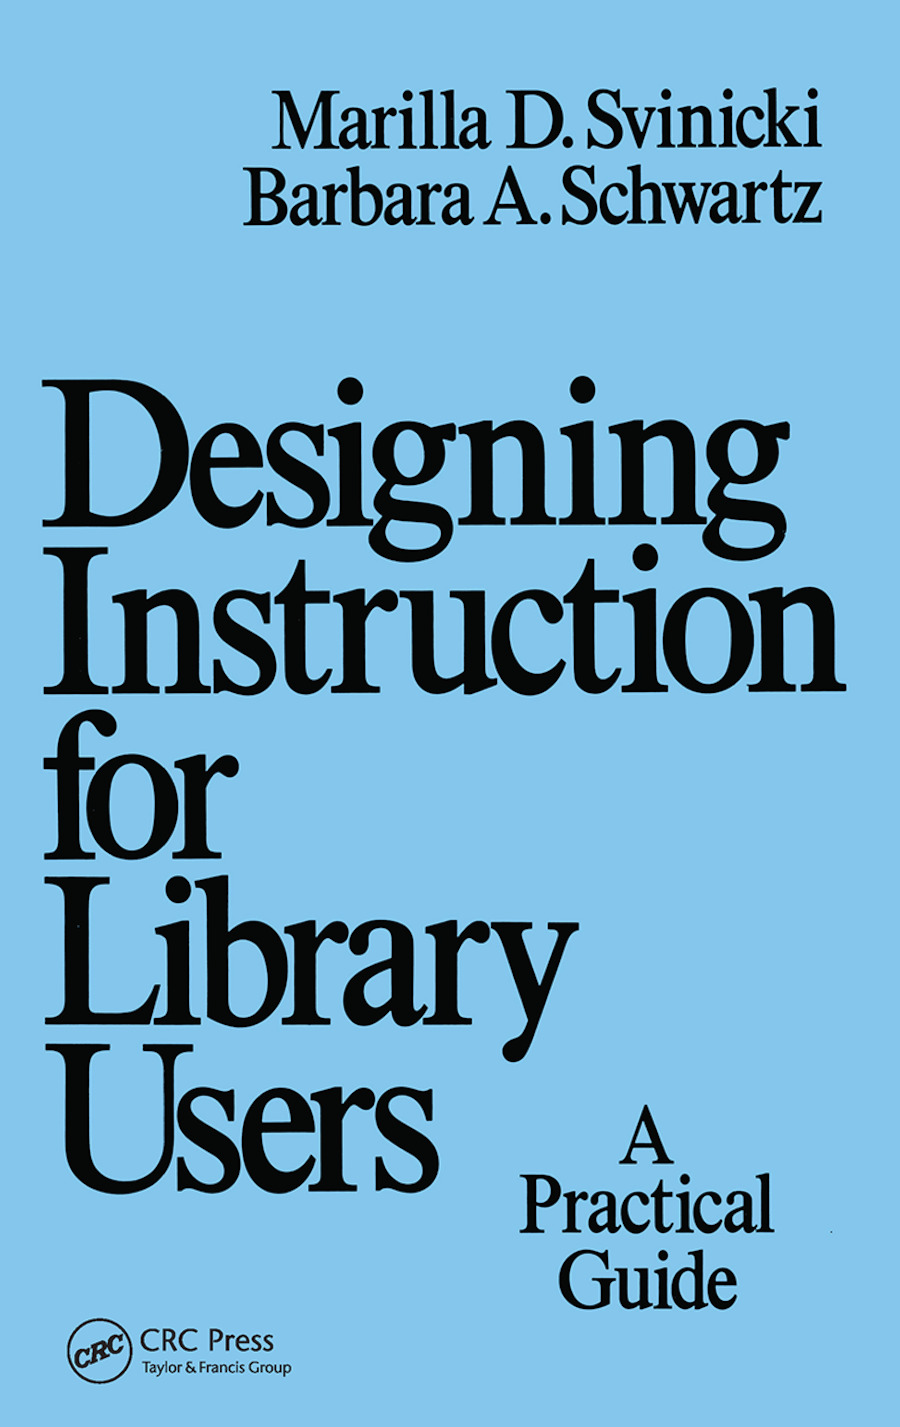 Designing Instruction for Library Users: A Practical Guide book cover